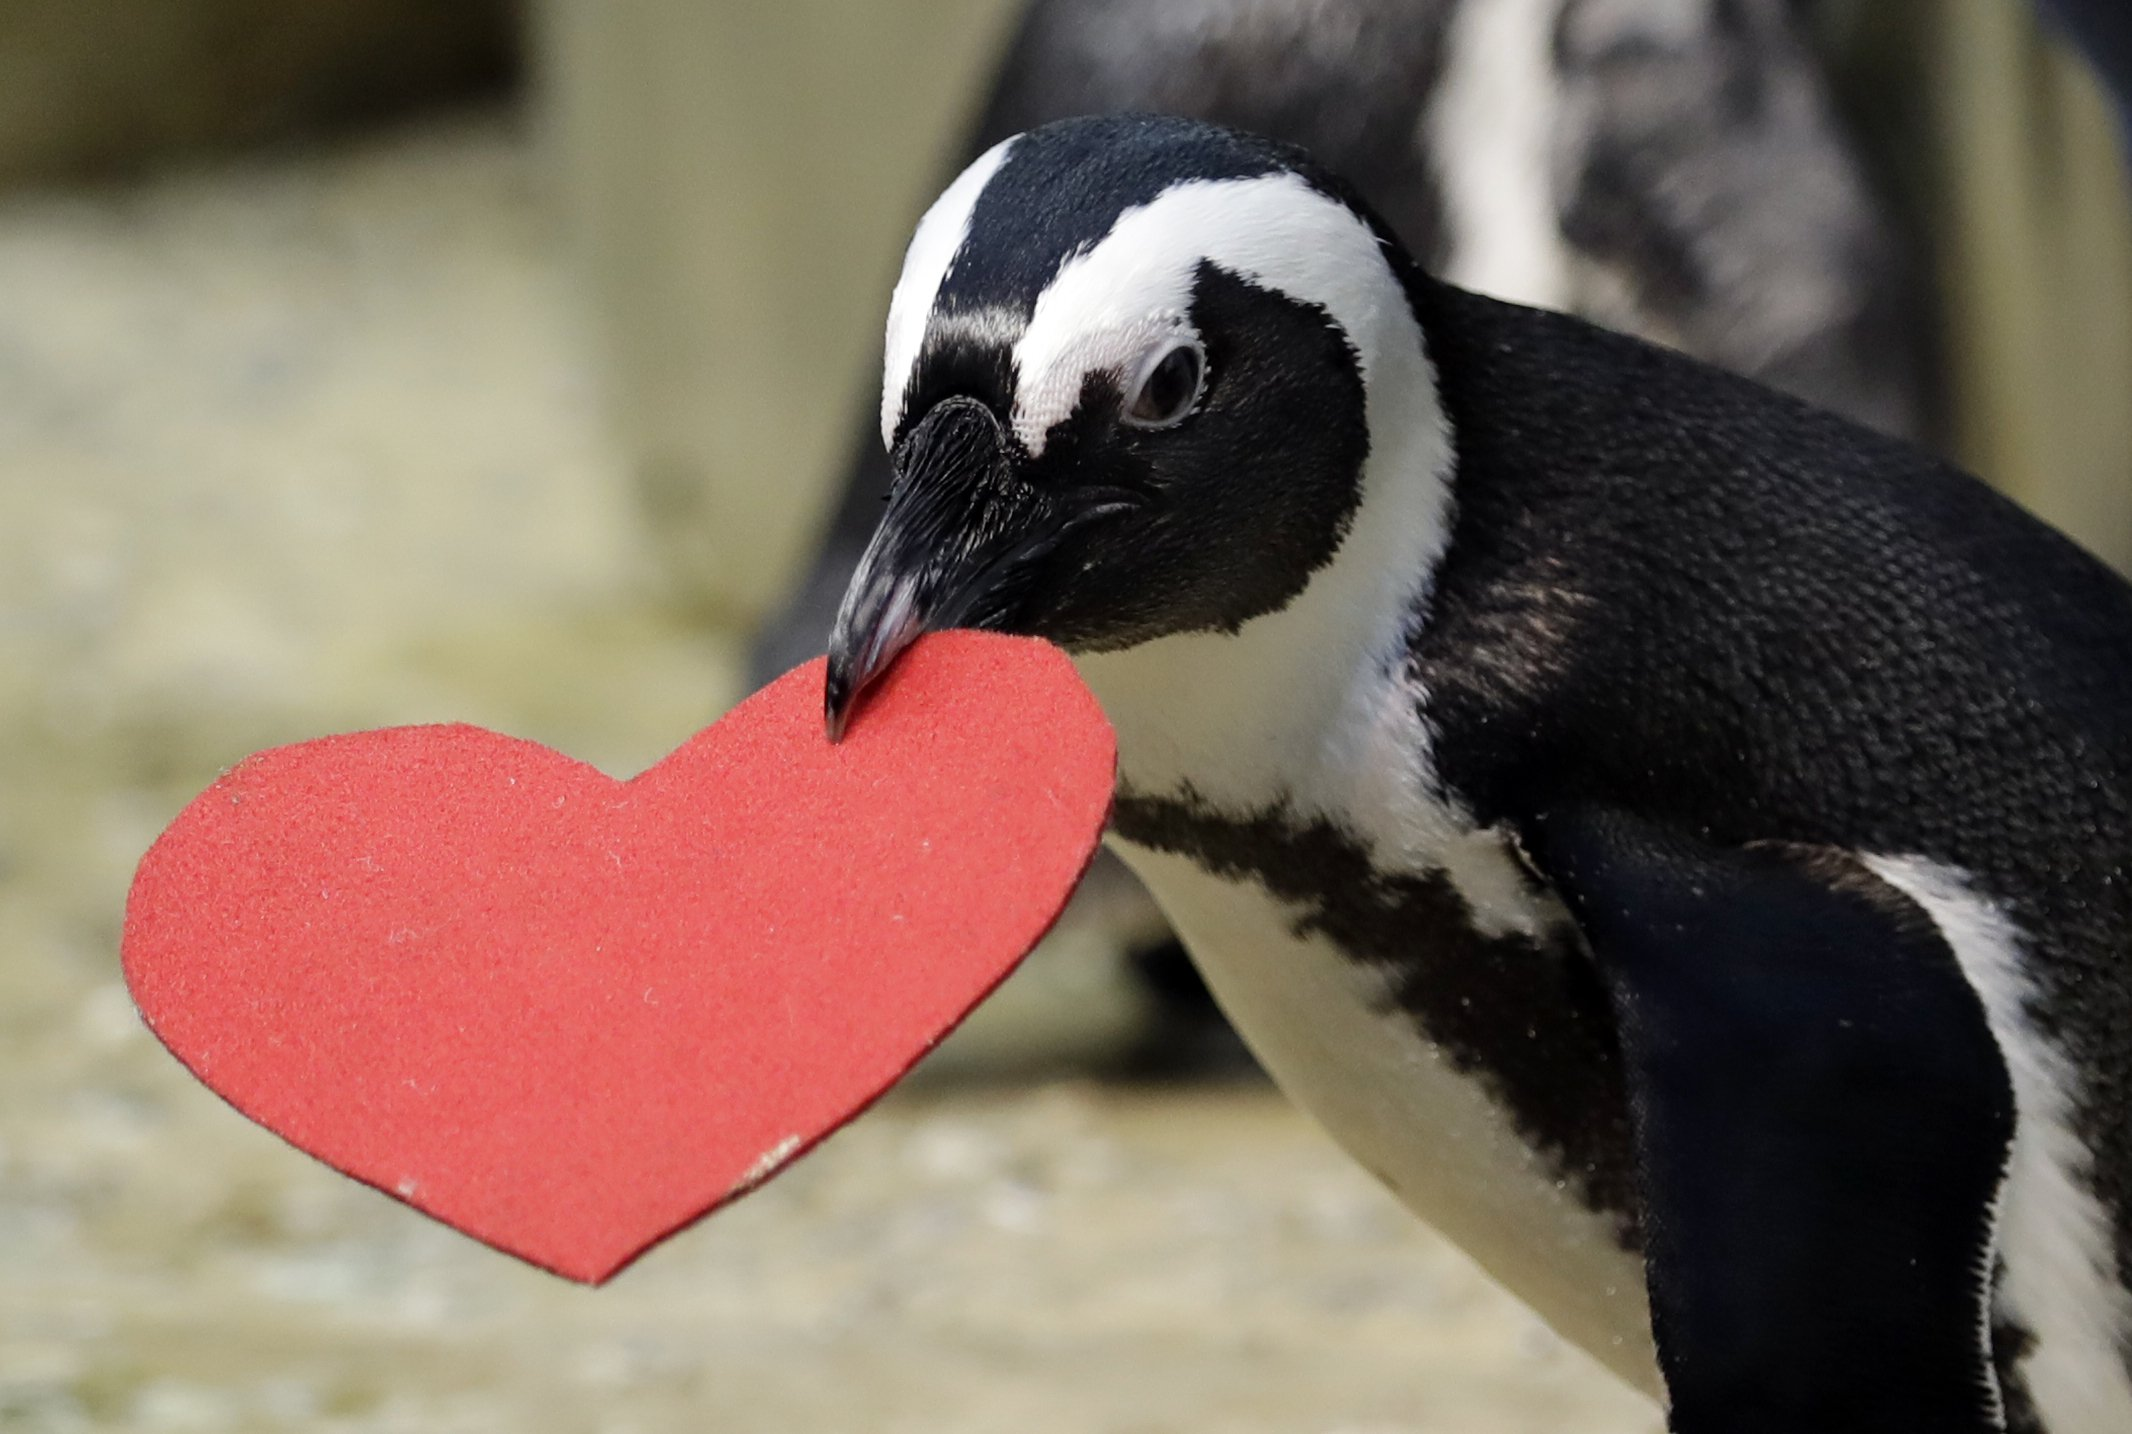 Penguins celebrate Valentine's Day by snoozing on felt hearts